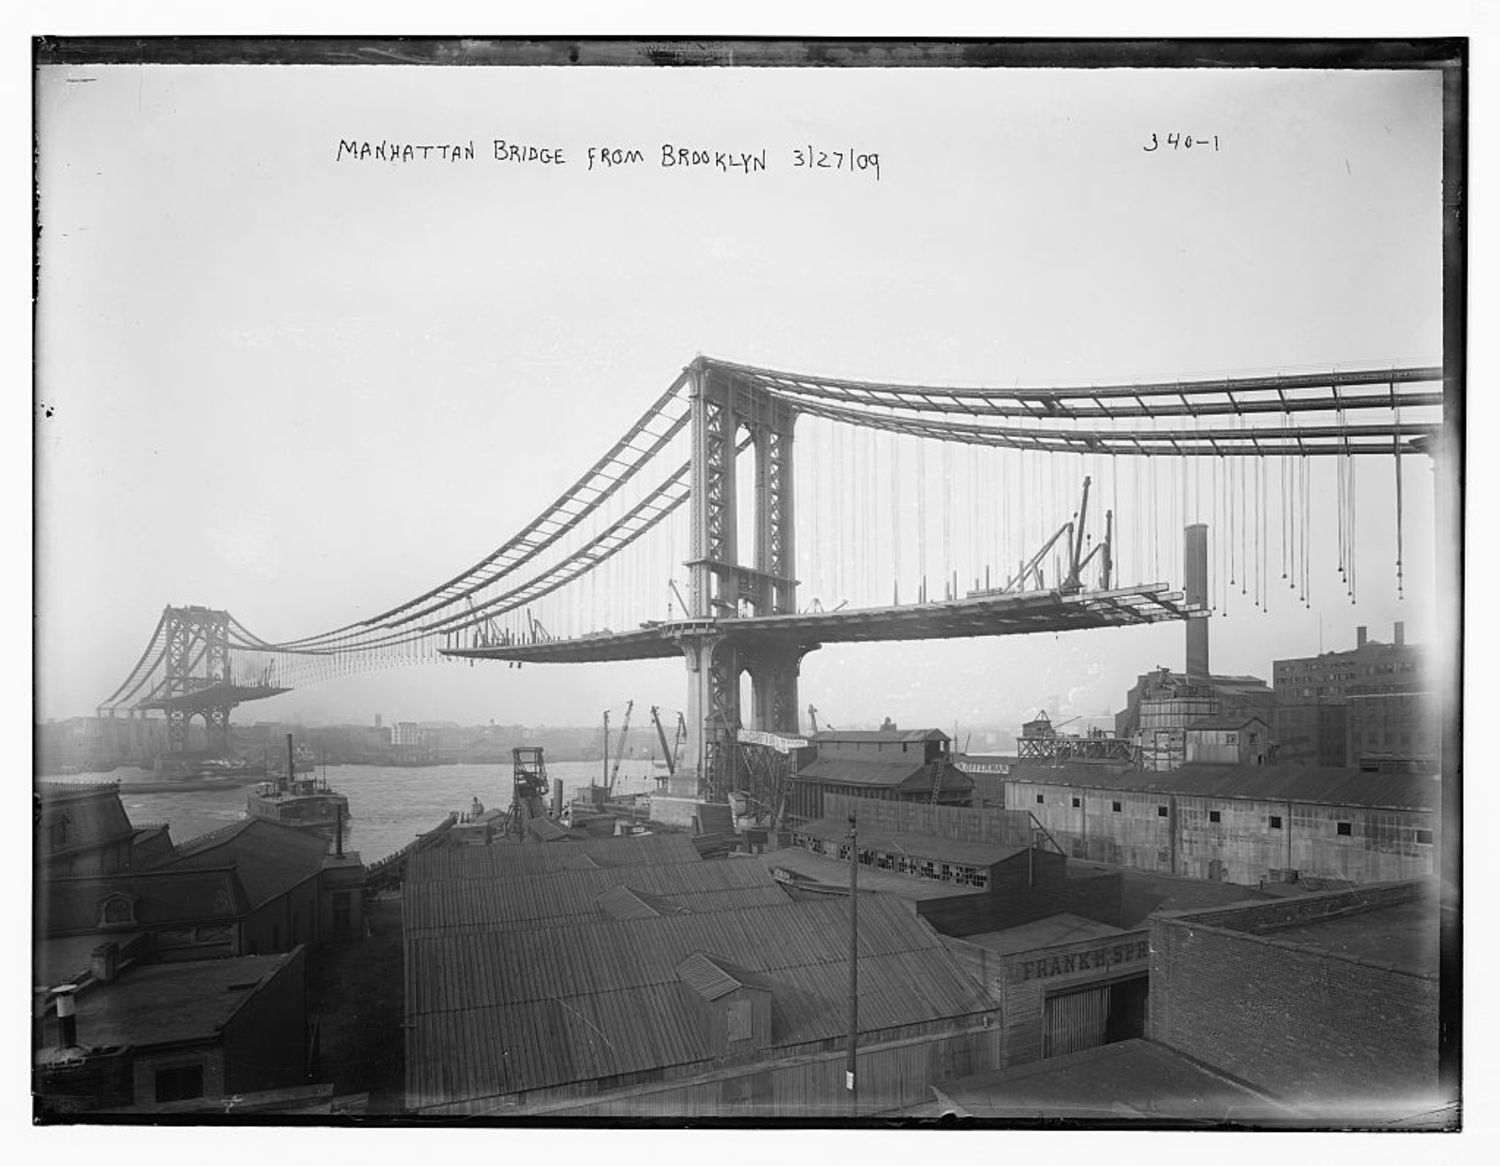 Manhattan Bridge From Brooklyn - 1909